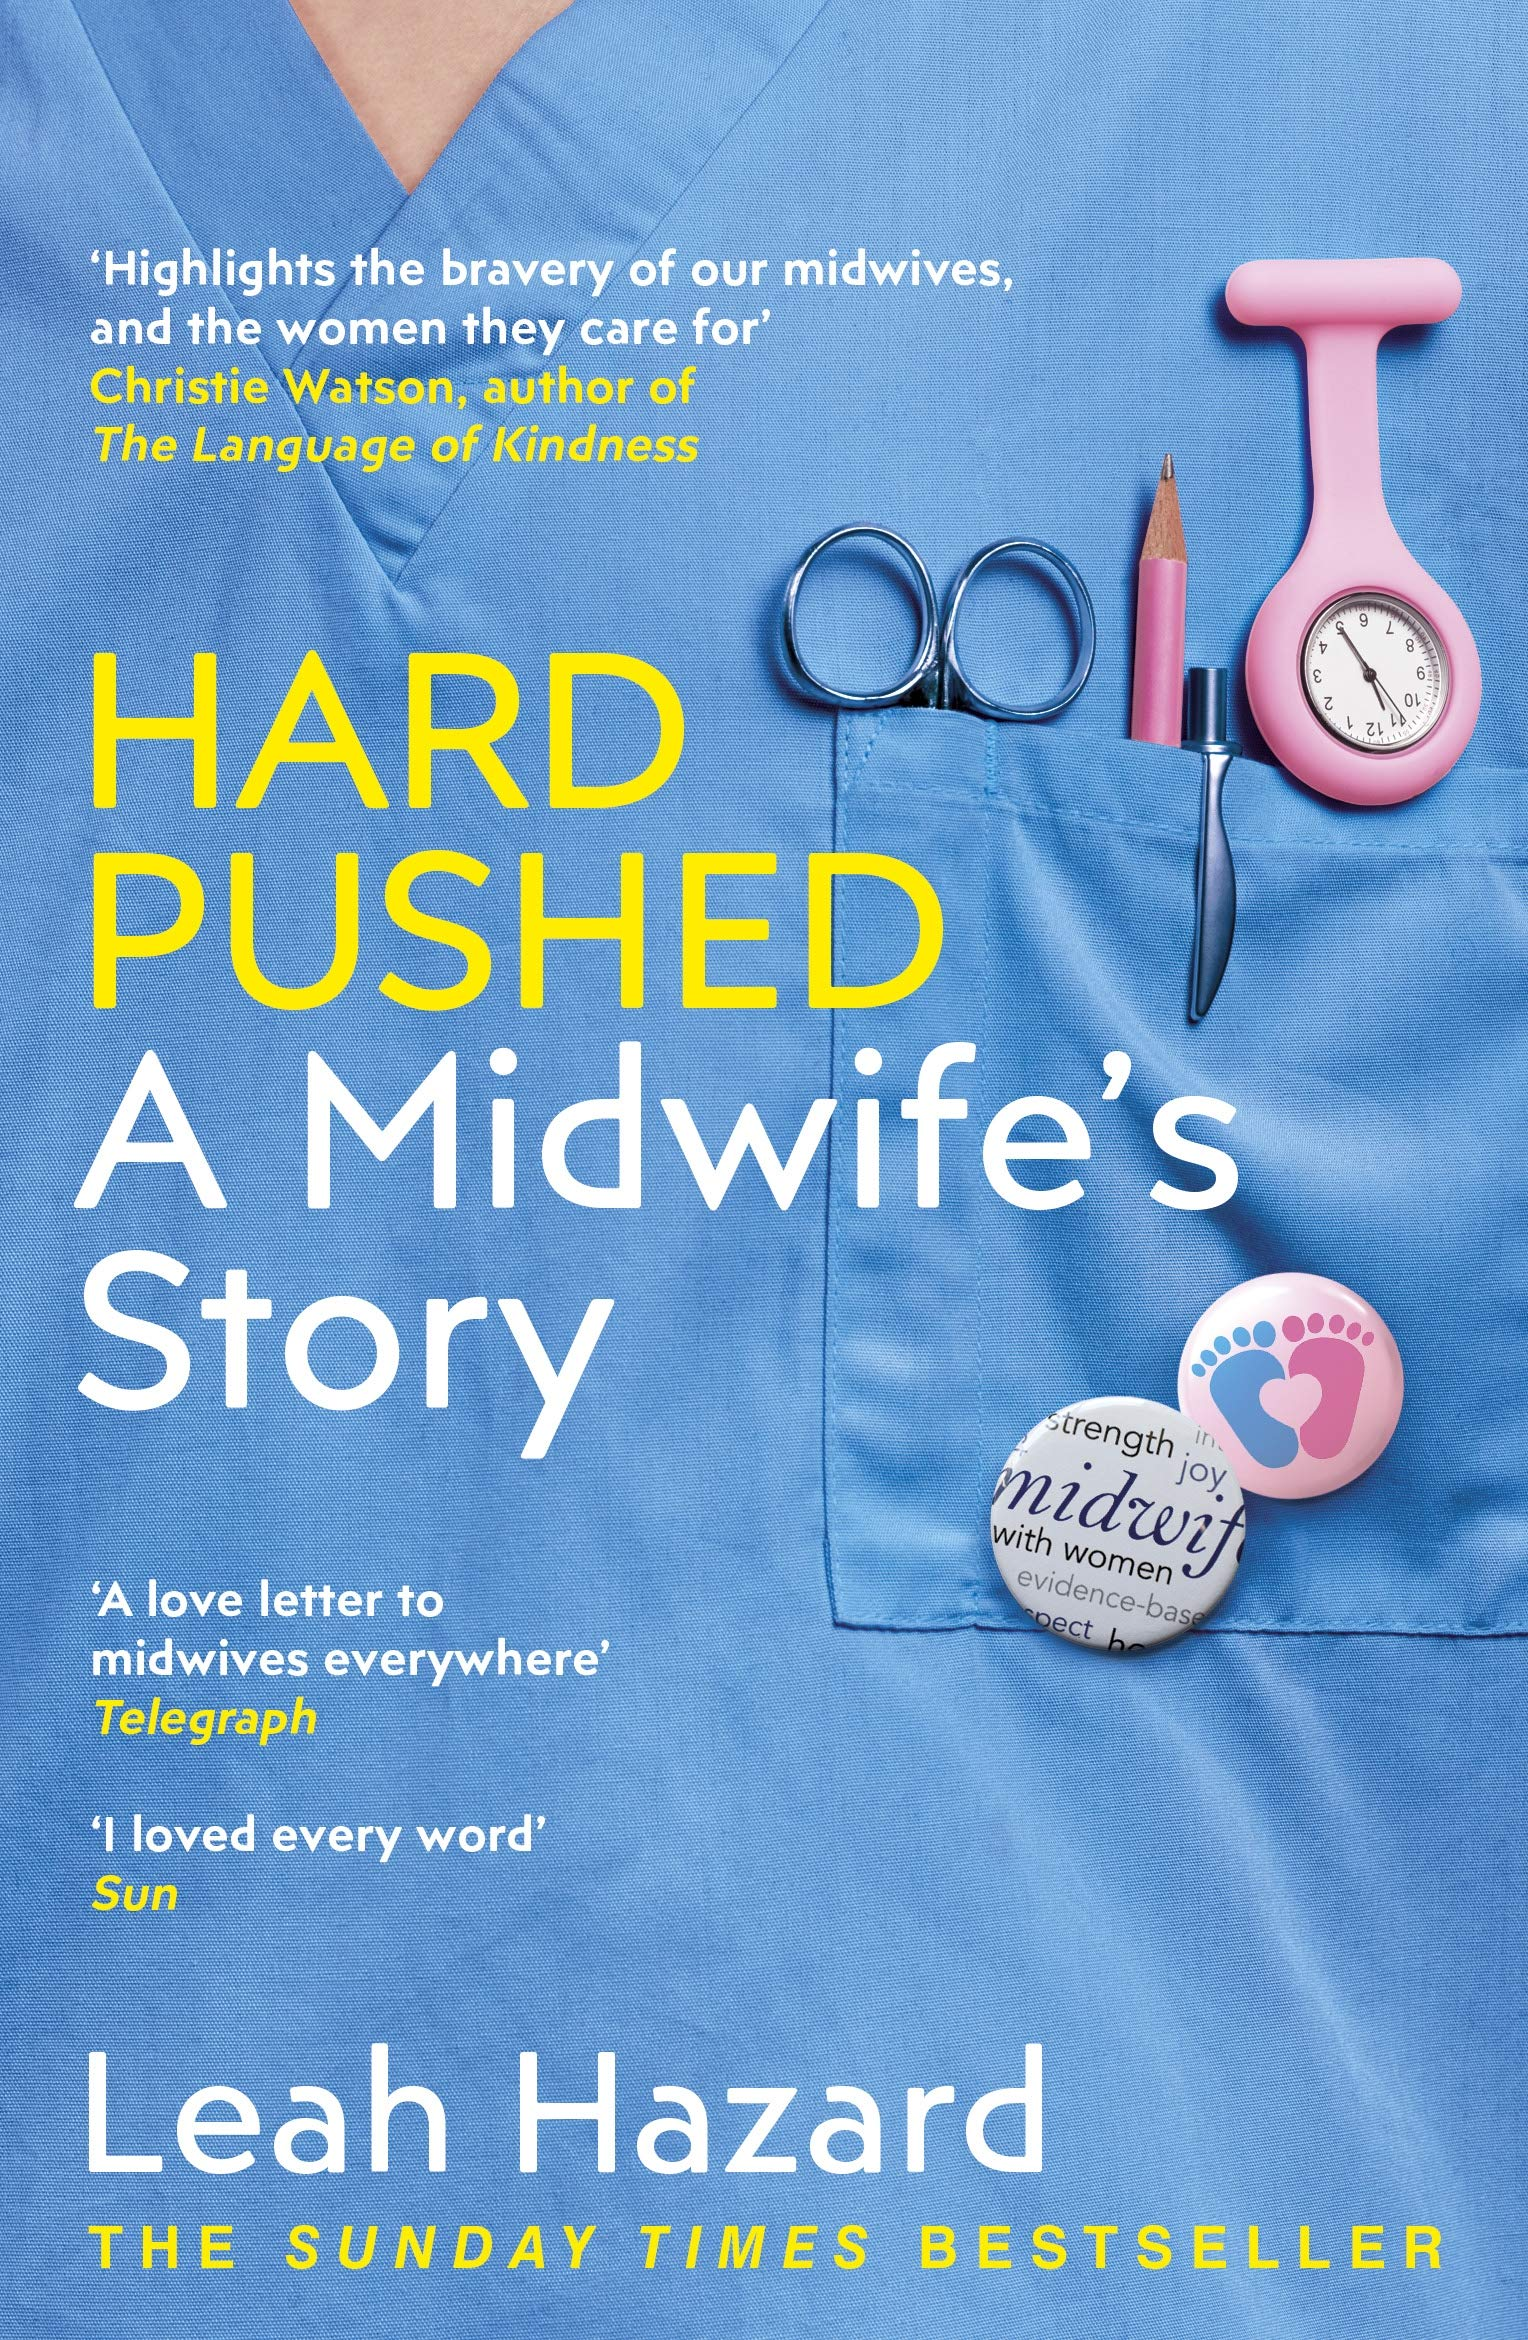 Hard Pushed: A Midwife's Story: Amazon.co.uk: Hazard, Leah: 9781787464216:  Books